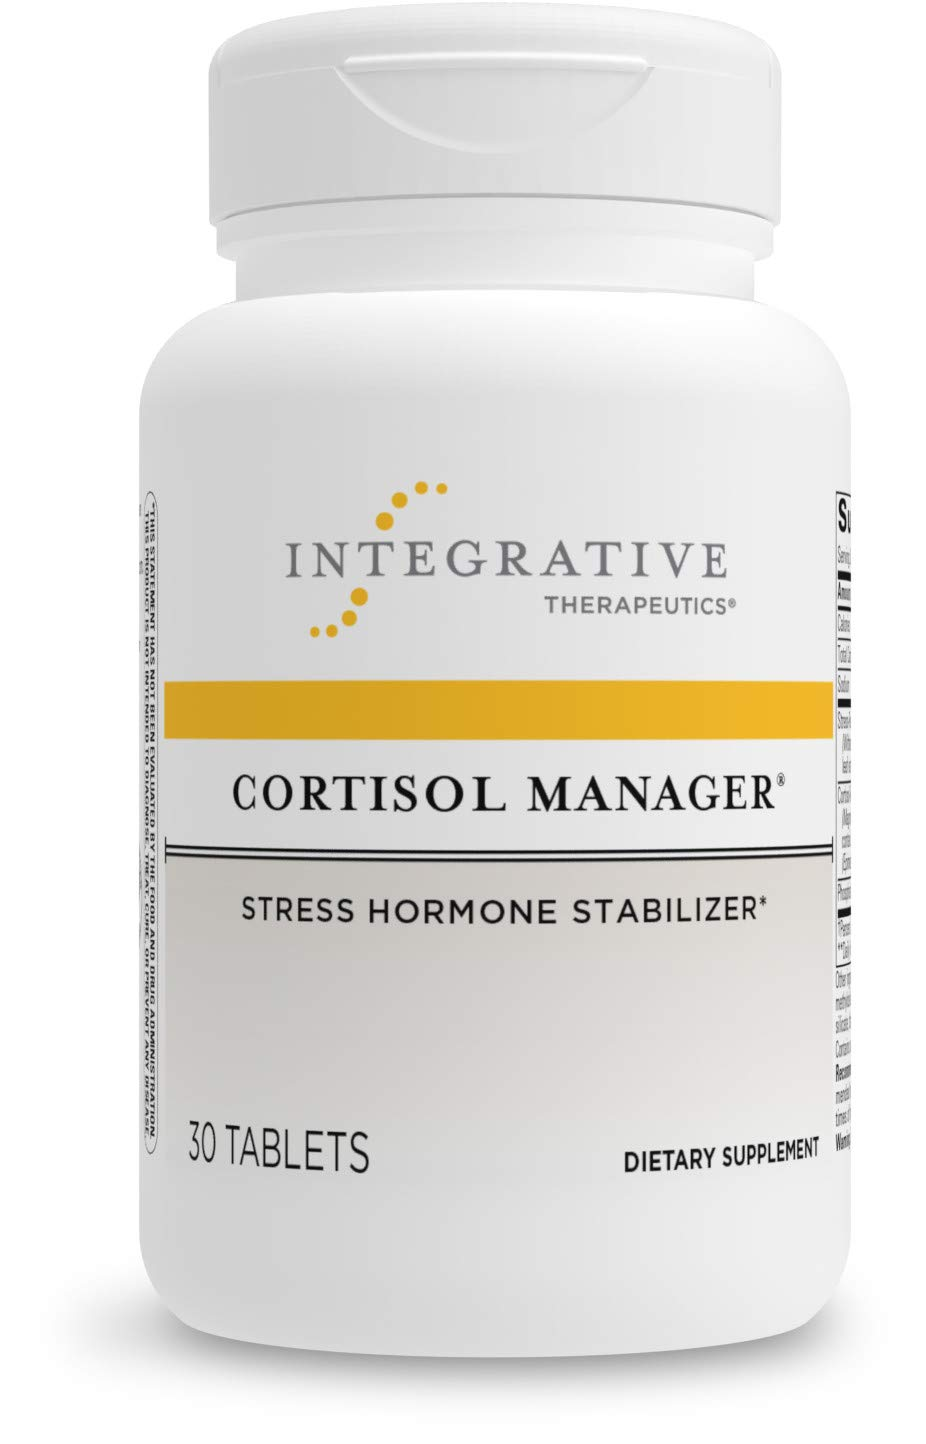 Cortisol Manager - Integrative Therapeutics - Sleep, Stress, and Cortisol Support Supplement with Ashwagandha, Magnolia, and L-Theanine - Support Adrenal Health - Vegan - 30 Tablets